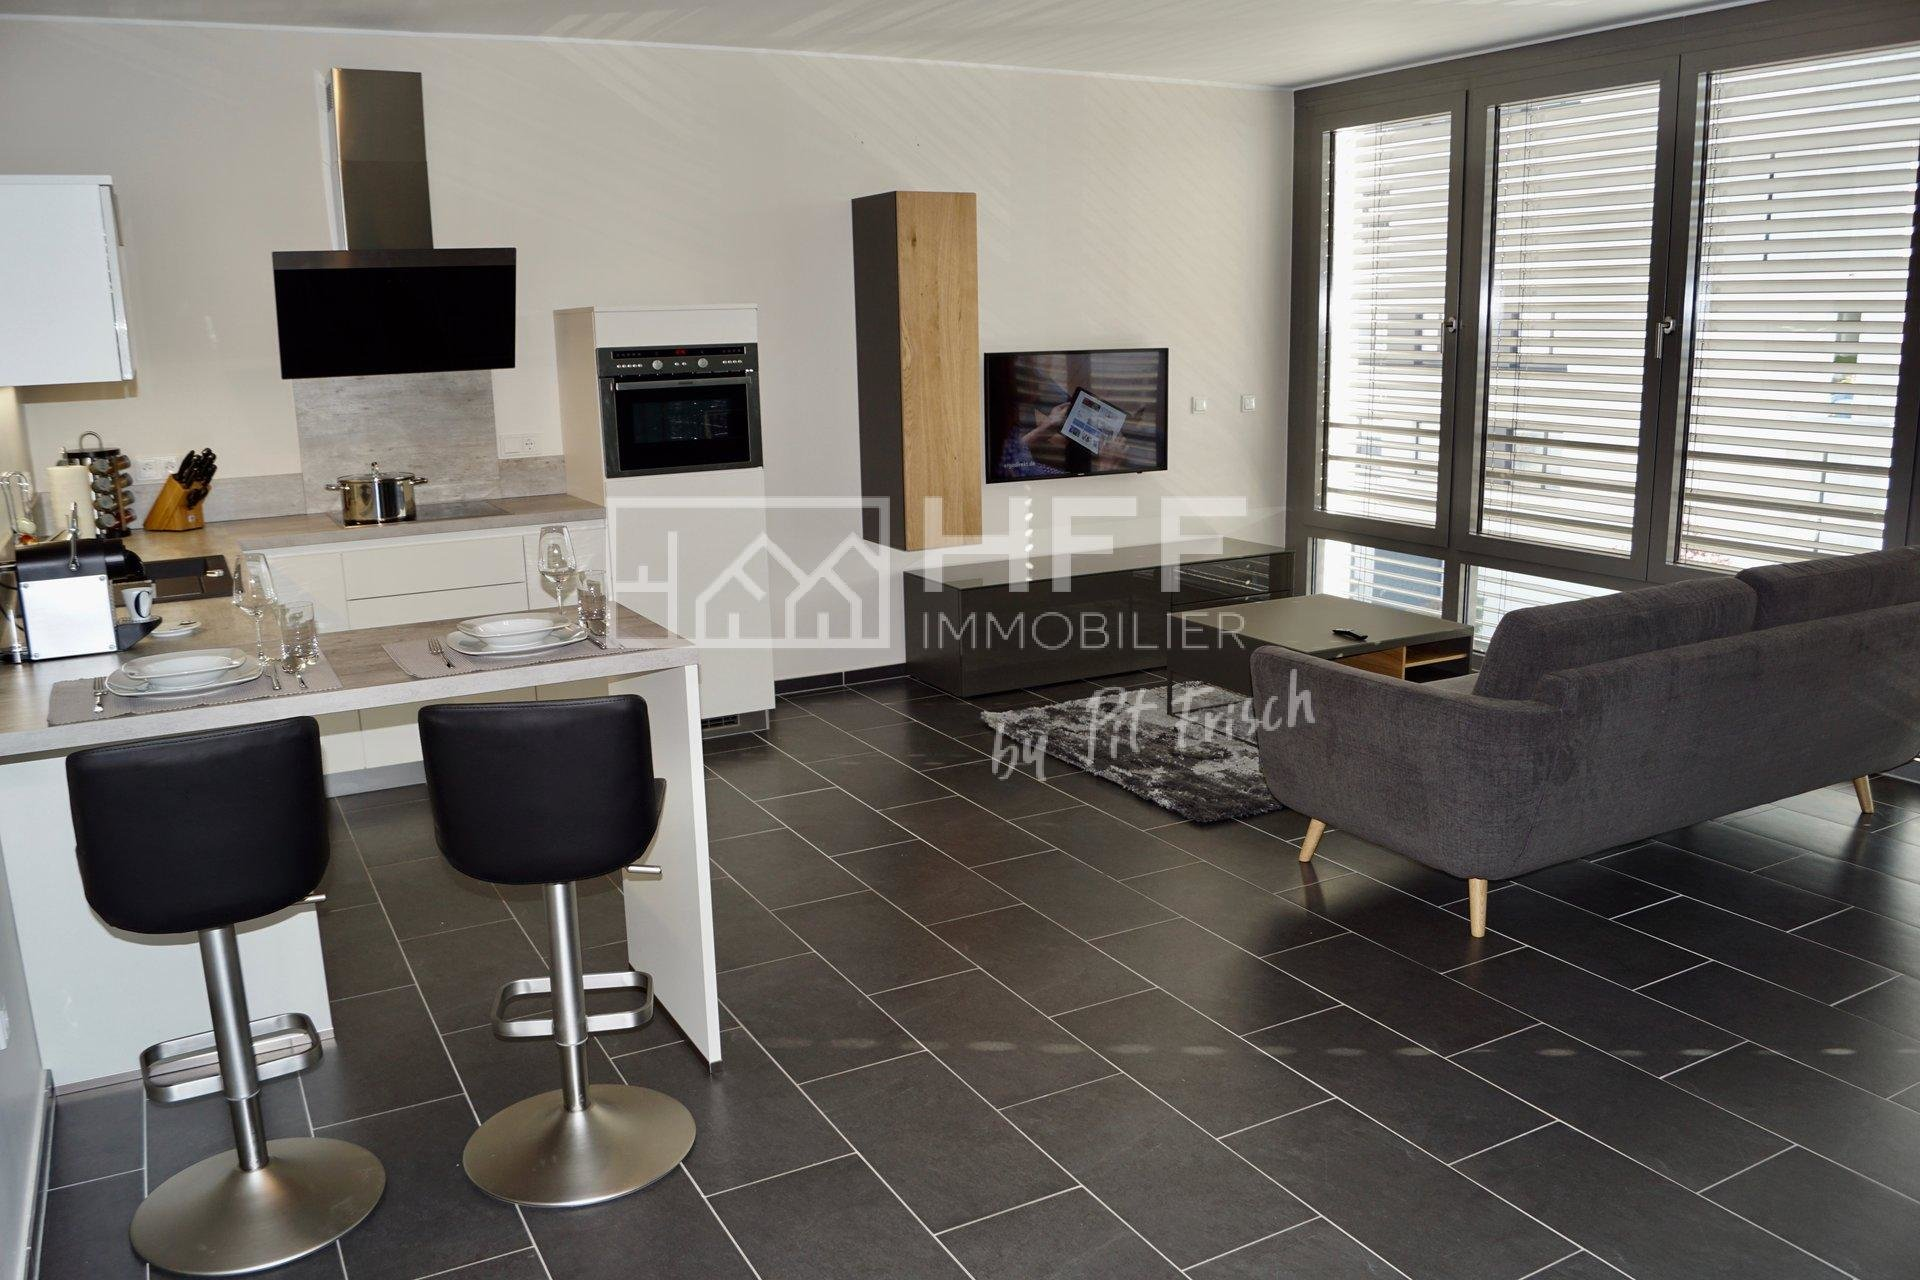 Furnished Service apartment in Luxembourg-Kirchberg